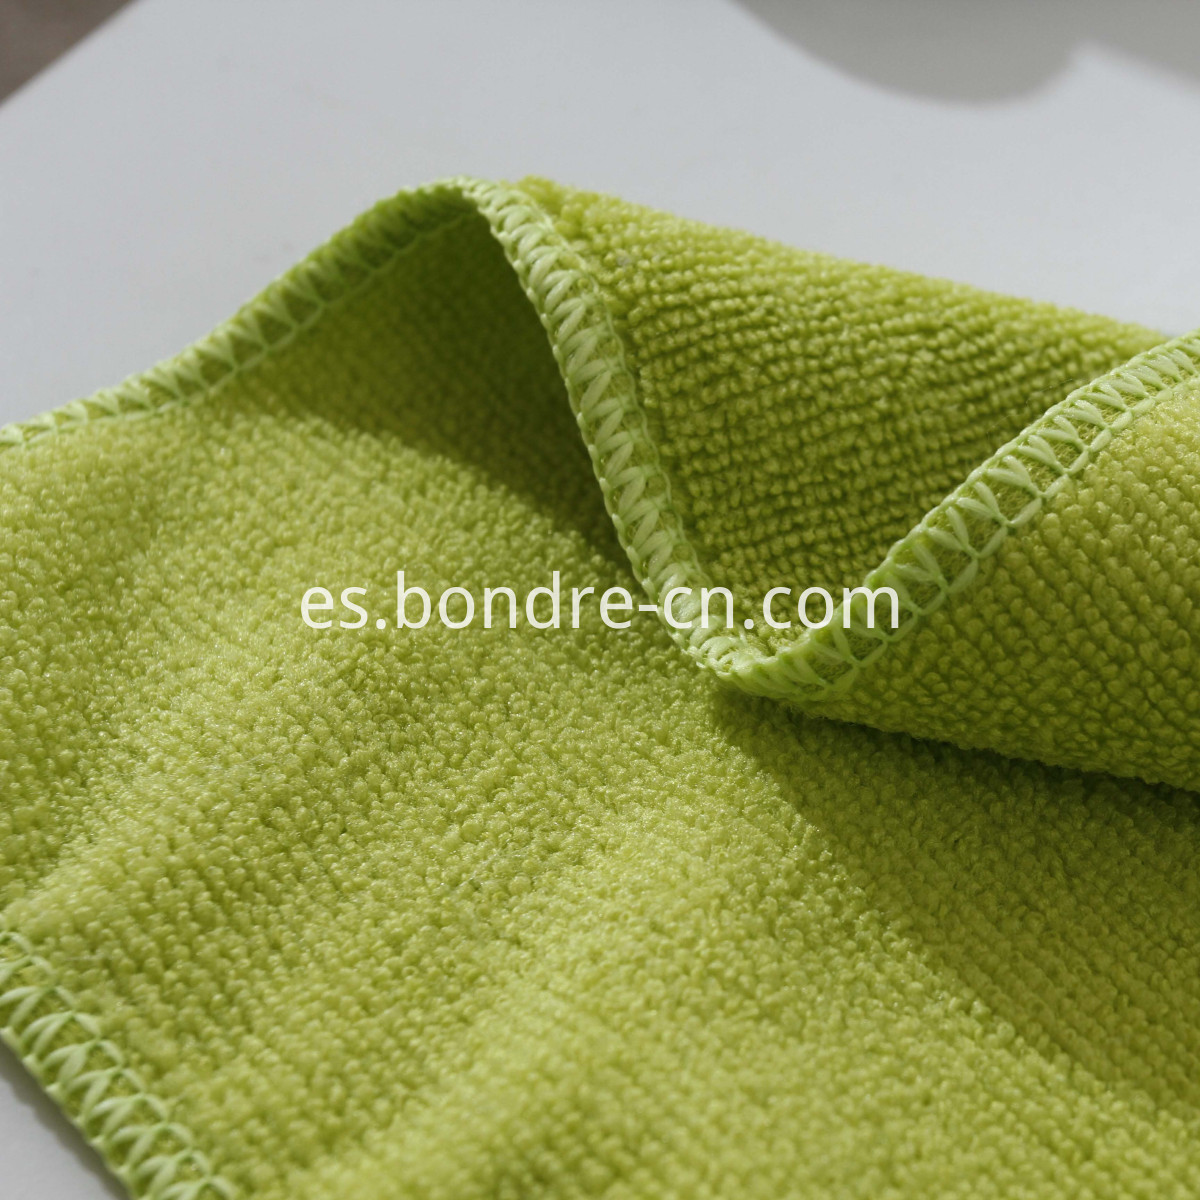 microfiber cleaning towels general house use high water absorbent-2